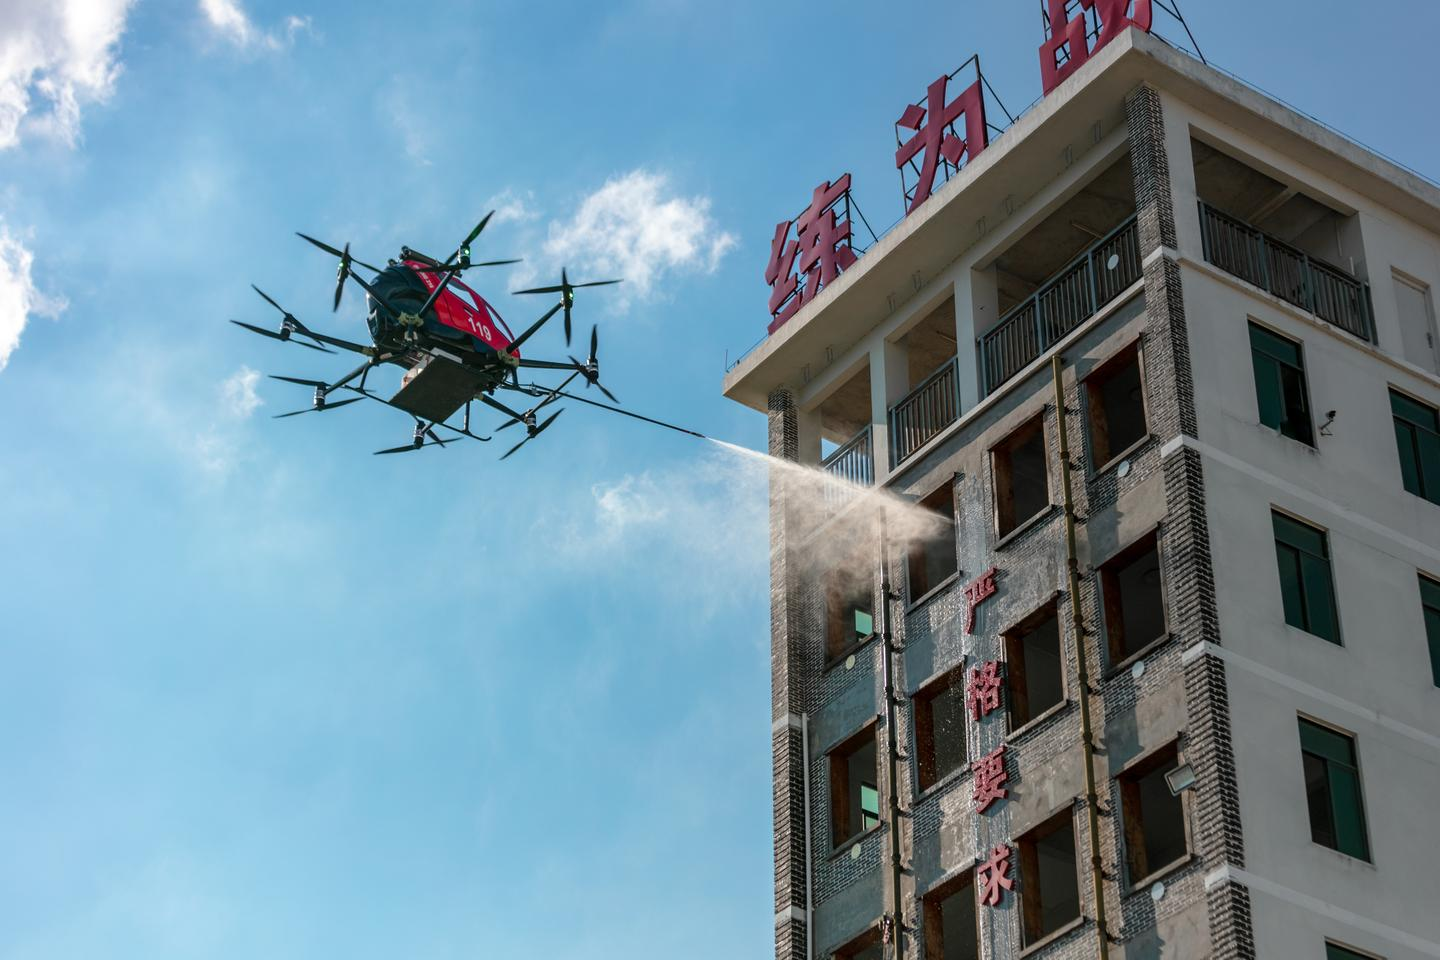 The EHang 216F uses zoom cameras to locate the blaze, and then employs a laser-guided window breaker before launching extinguisher bombs and spraying the fire with foam